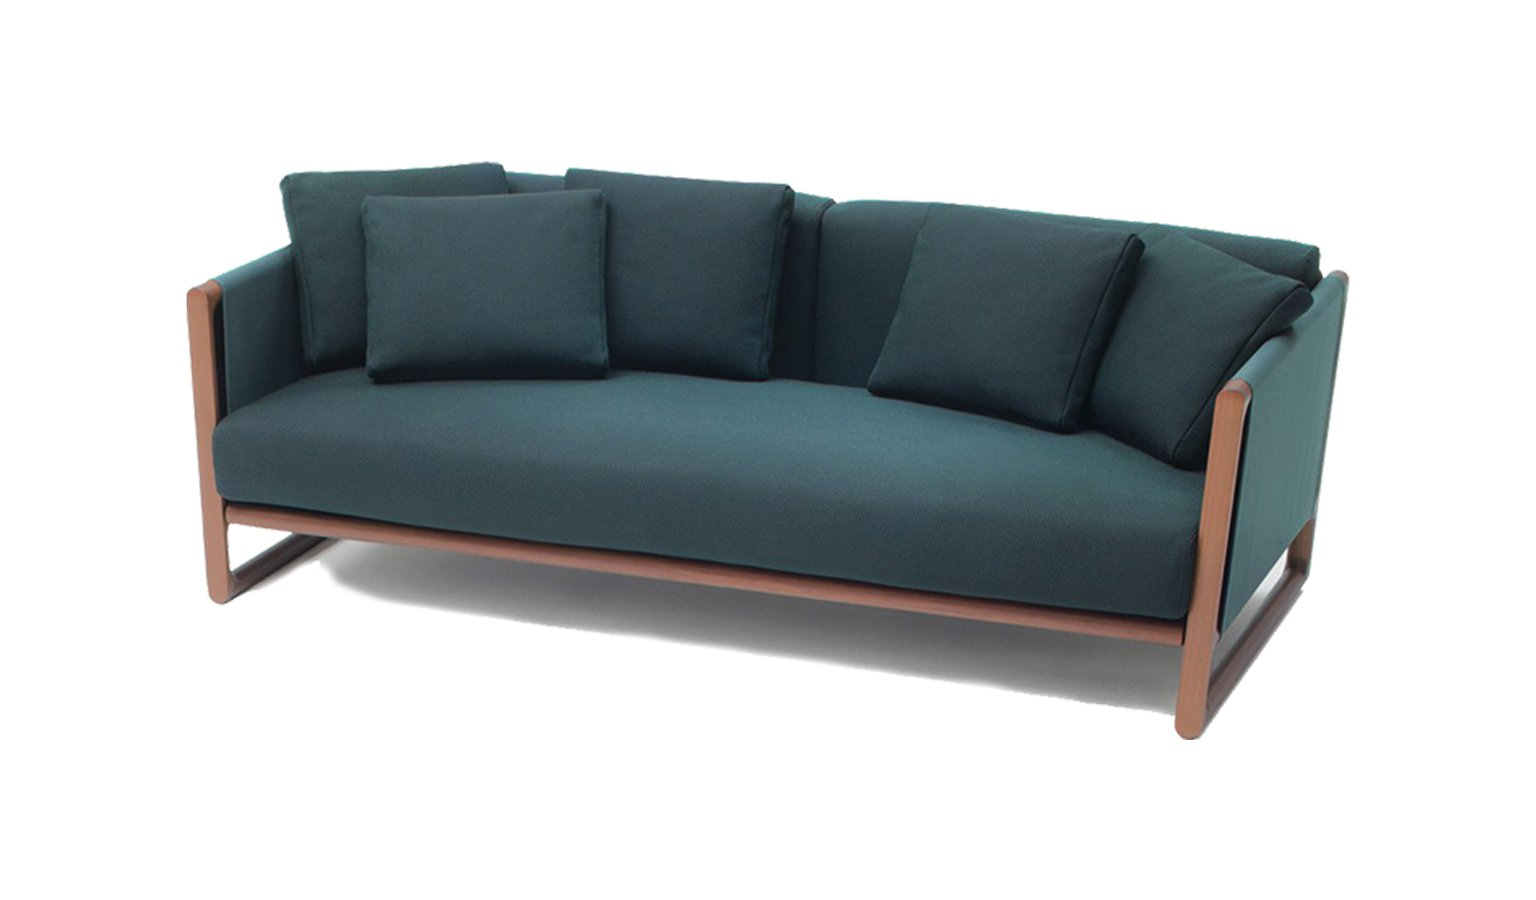 Big Sofa Vincent Portofino By Paola Lenti Ecc